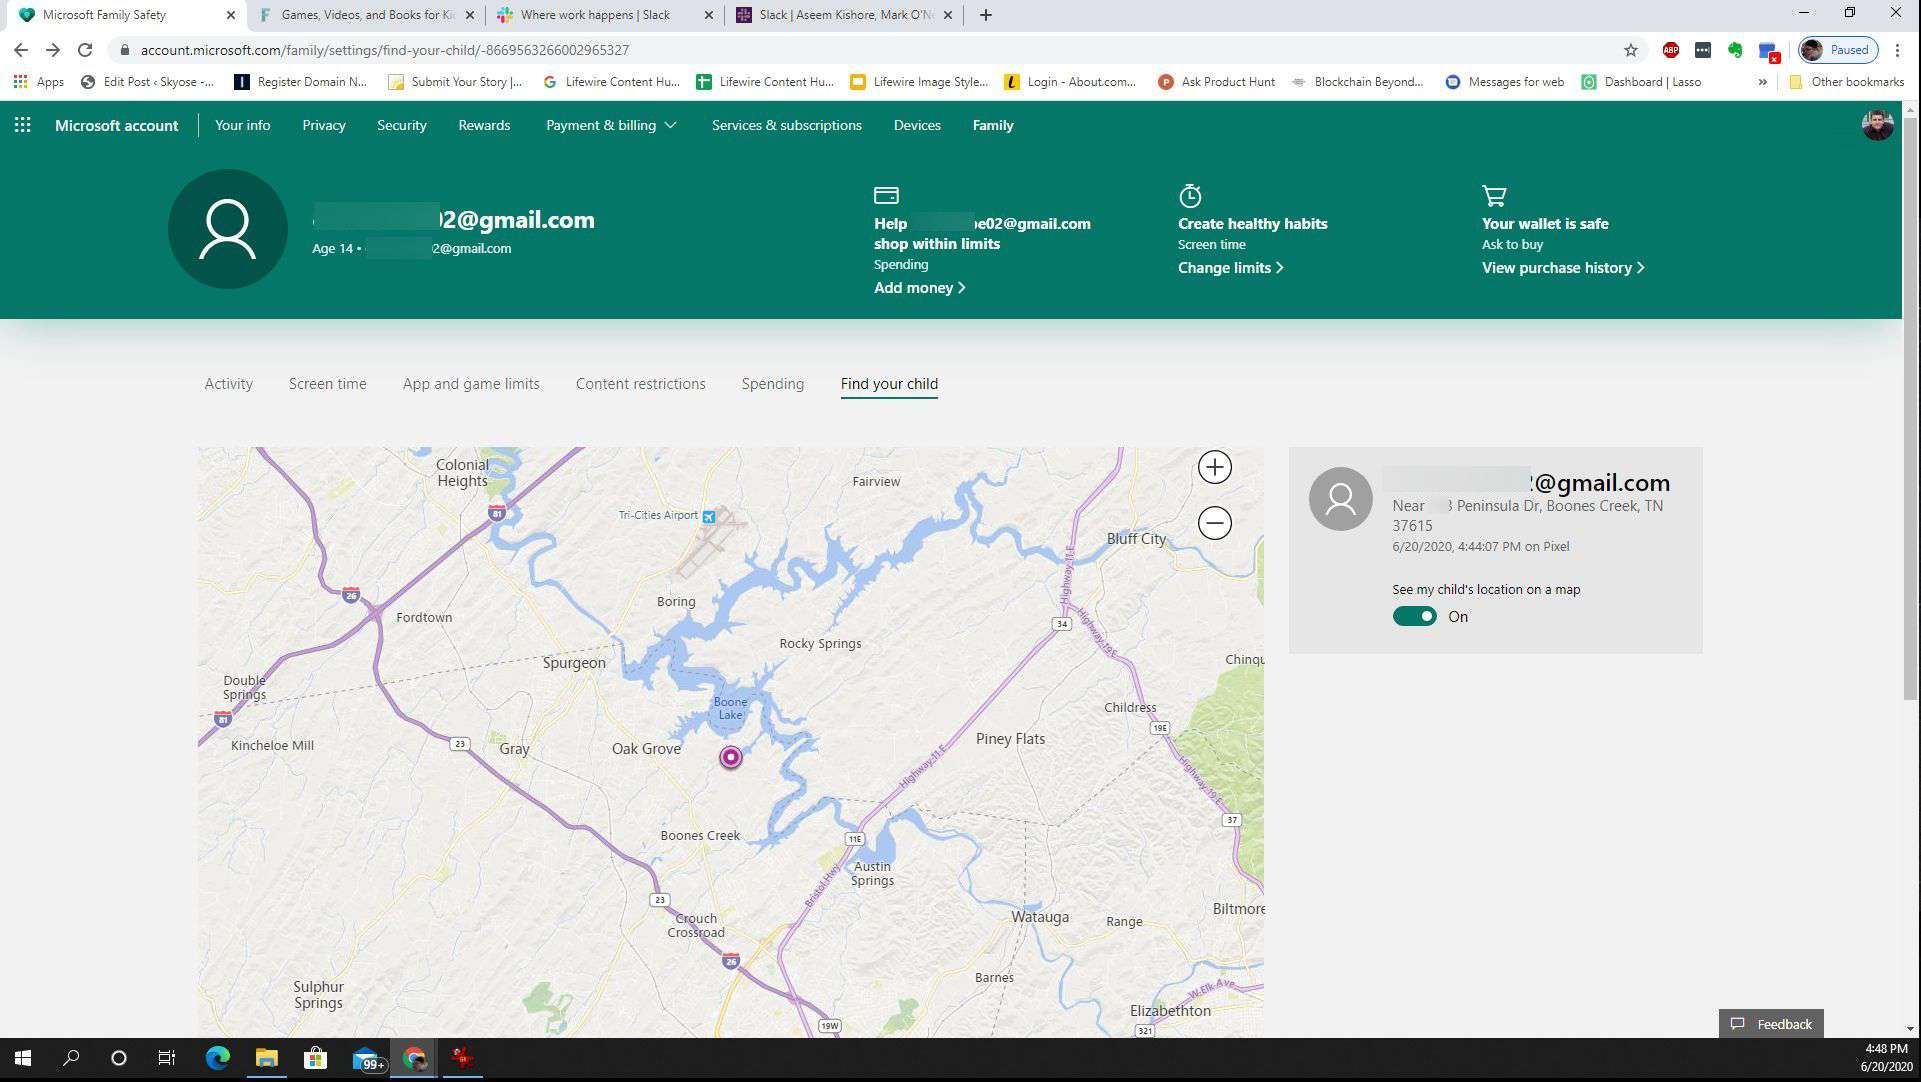 Screenshot of the location feature in Microsoft Family Safety